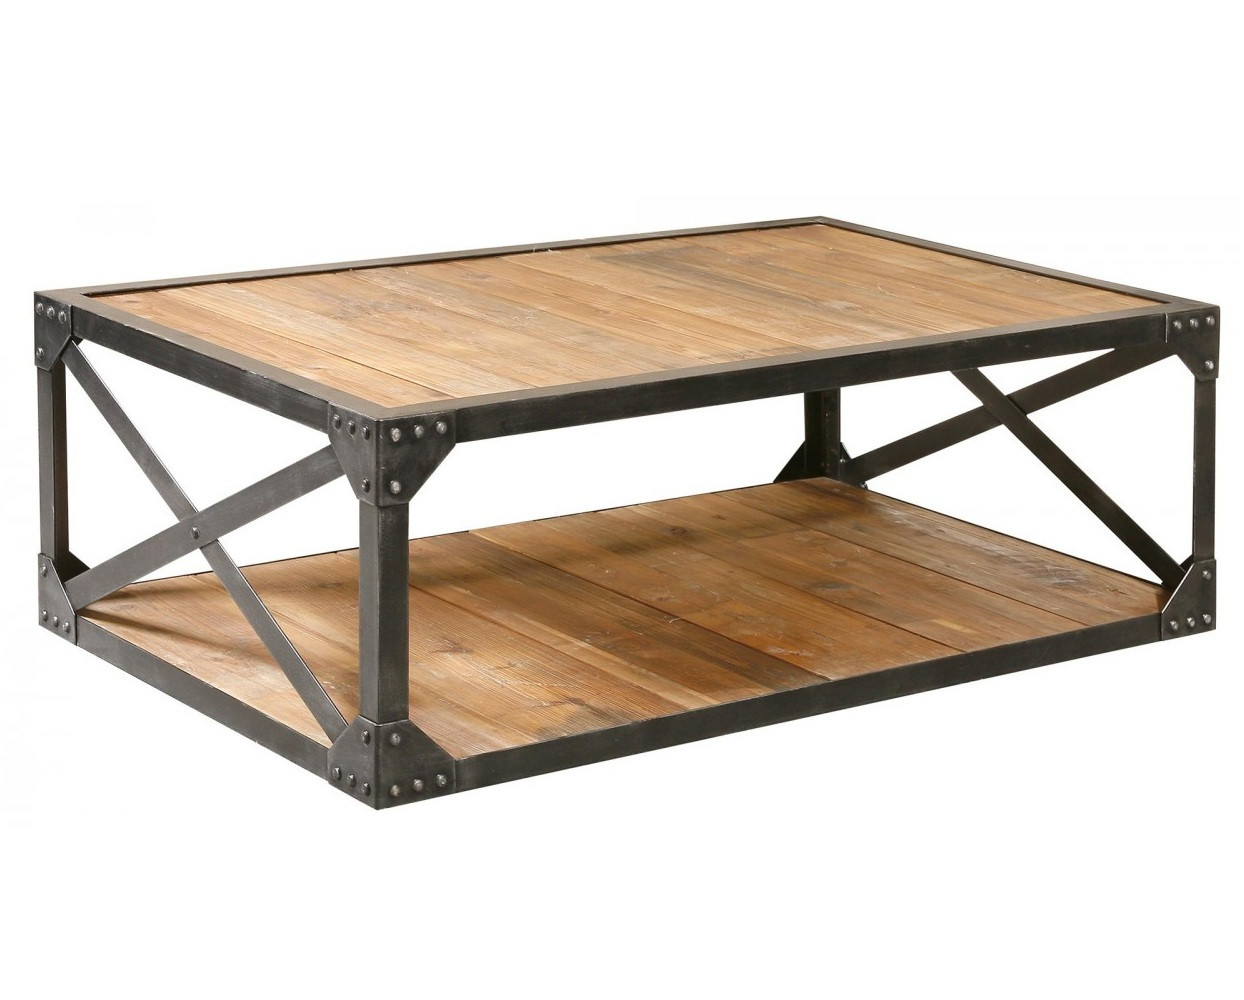 Industrial metal and wood coffee 51 table rectangular Wood and steel furniture